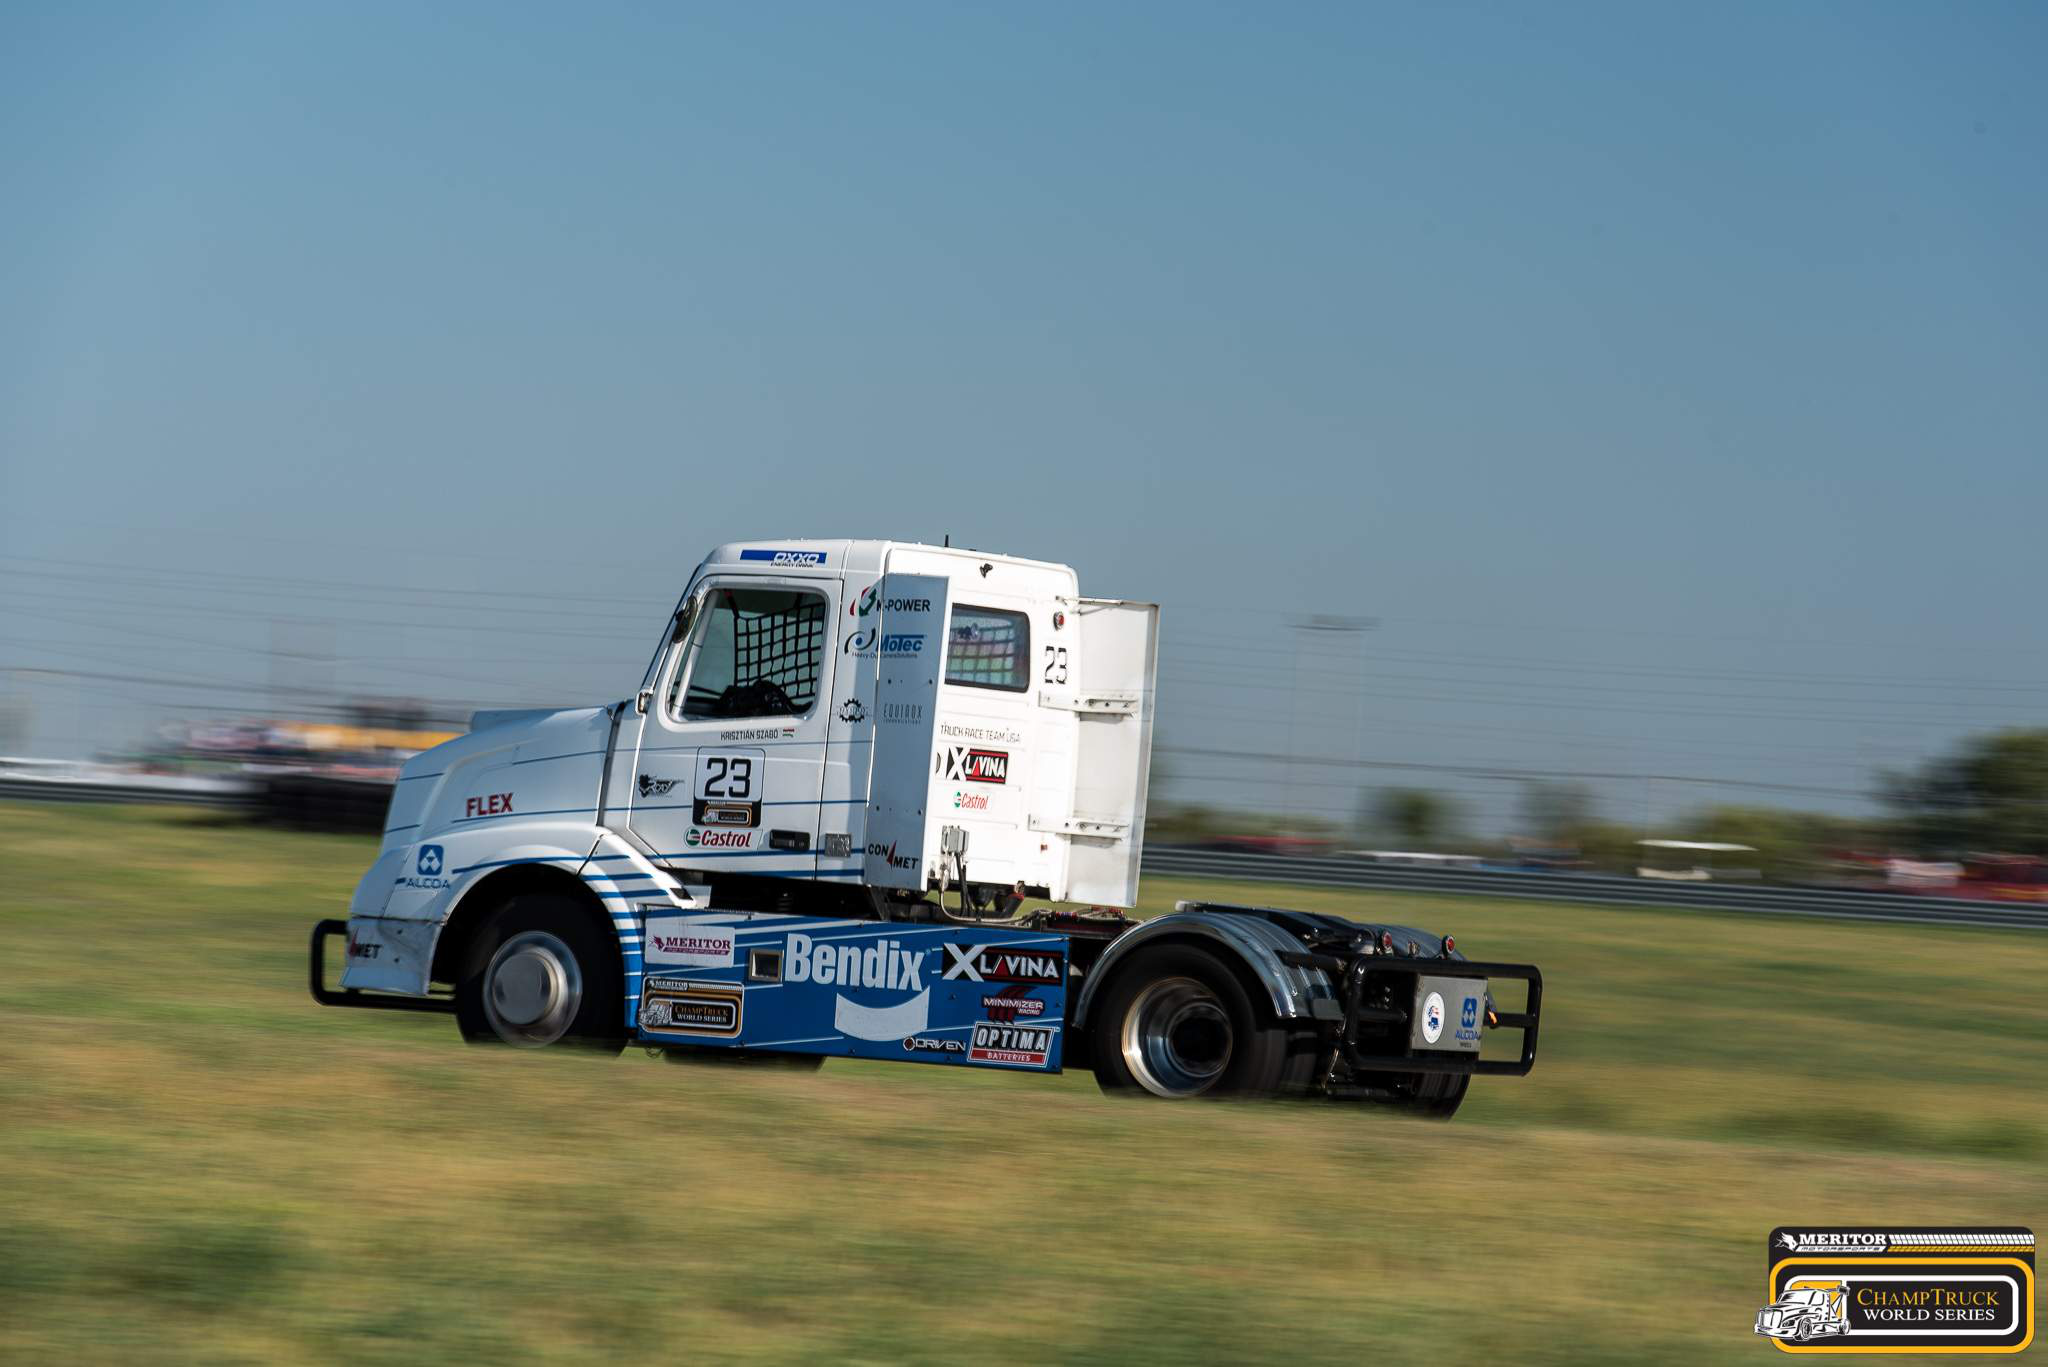 Hungarian racer Krisztian Szabo drove to victory in ChampTruck's seventh race of the season at Motorsports Park Hastings in Nebraska.